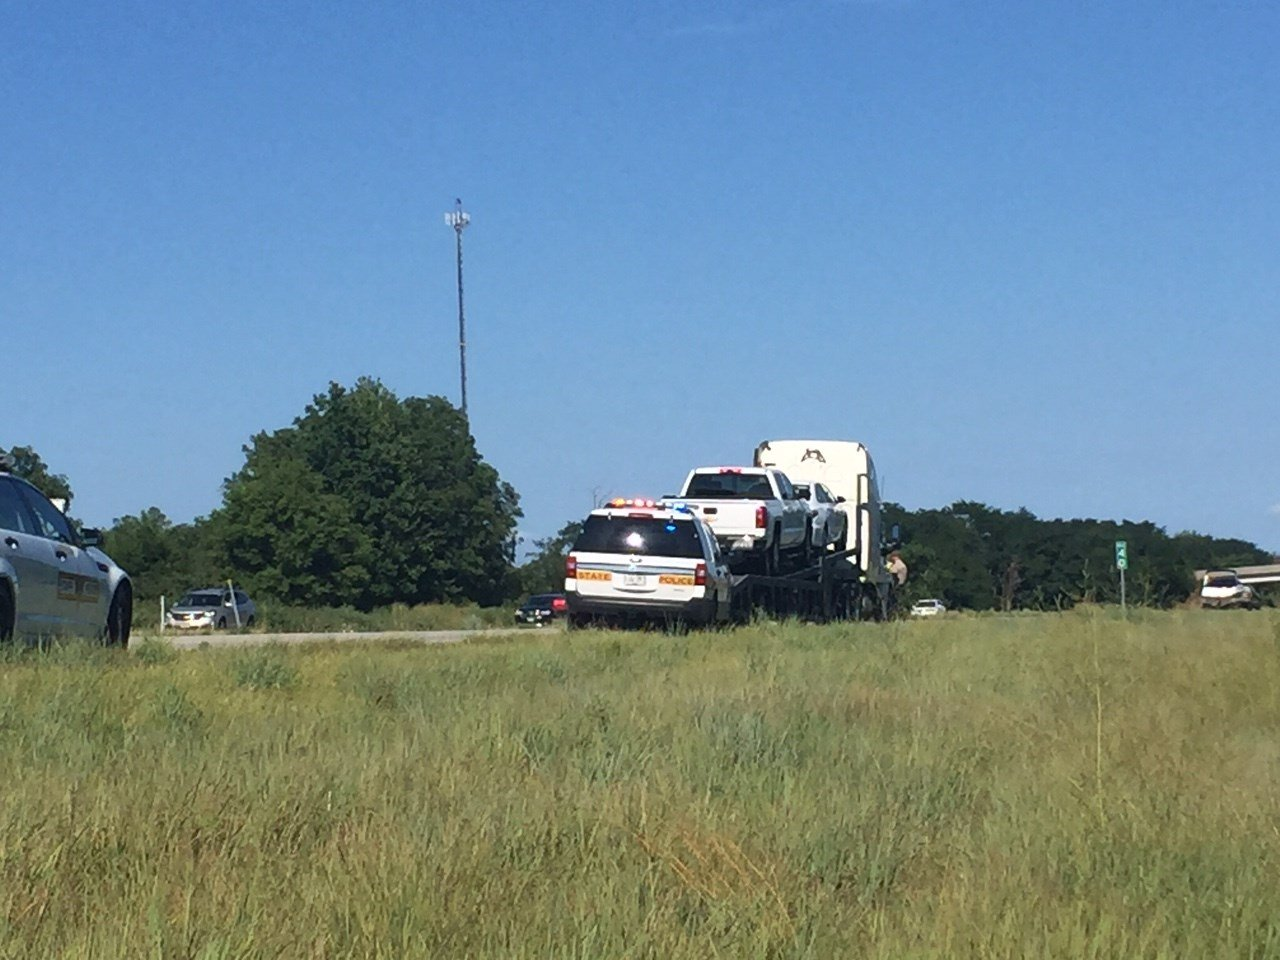 State Police vehicle and truck on the side of the road.